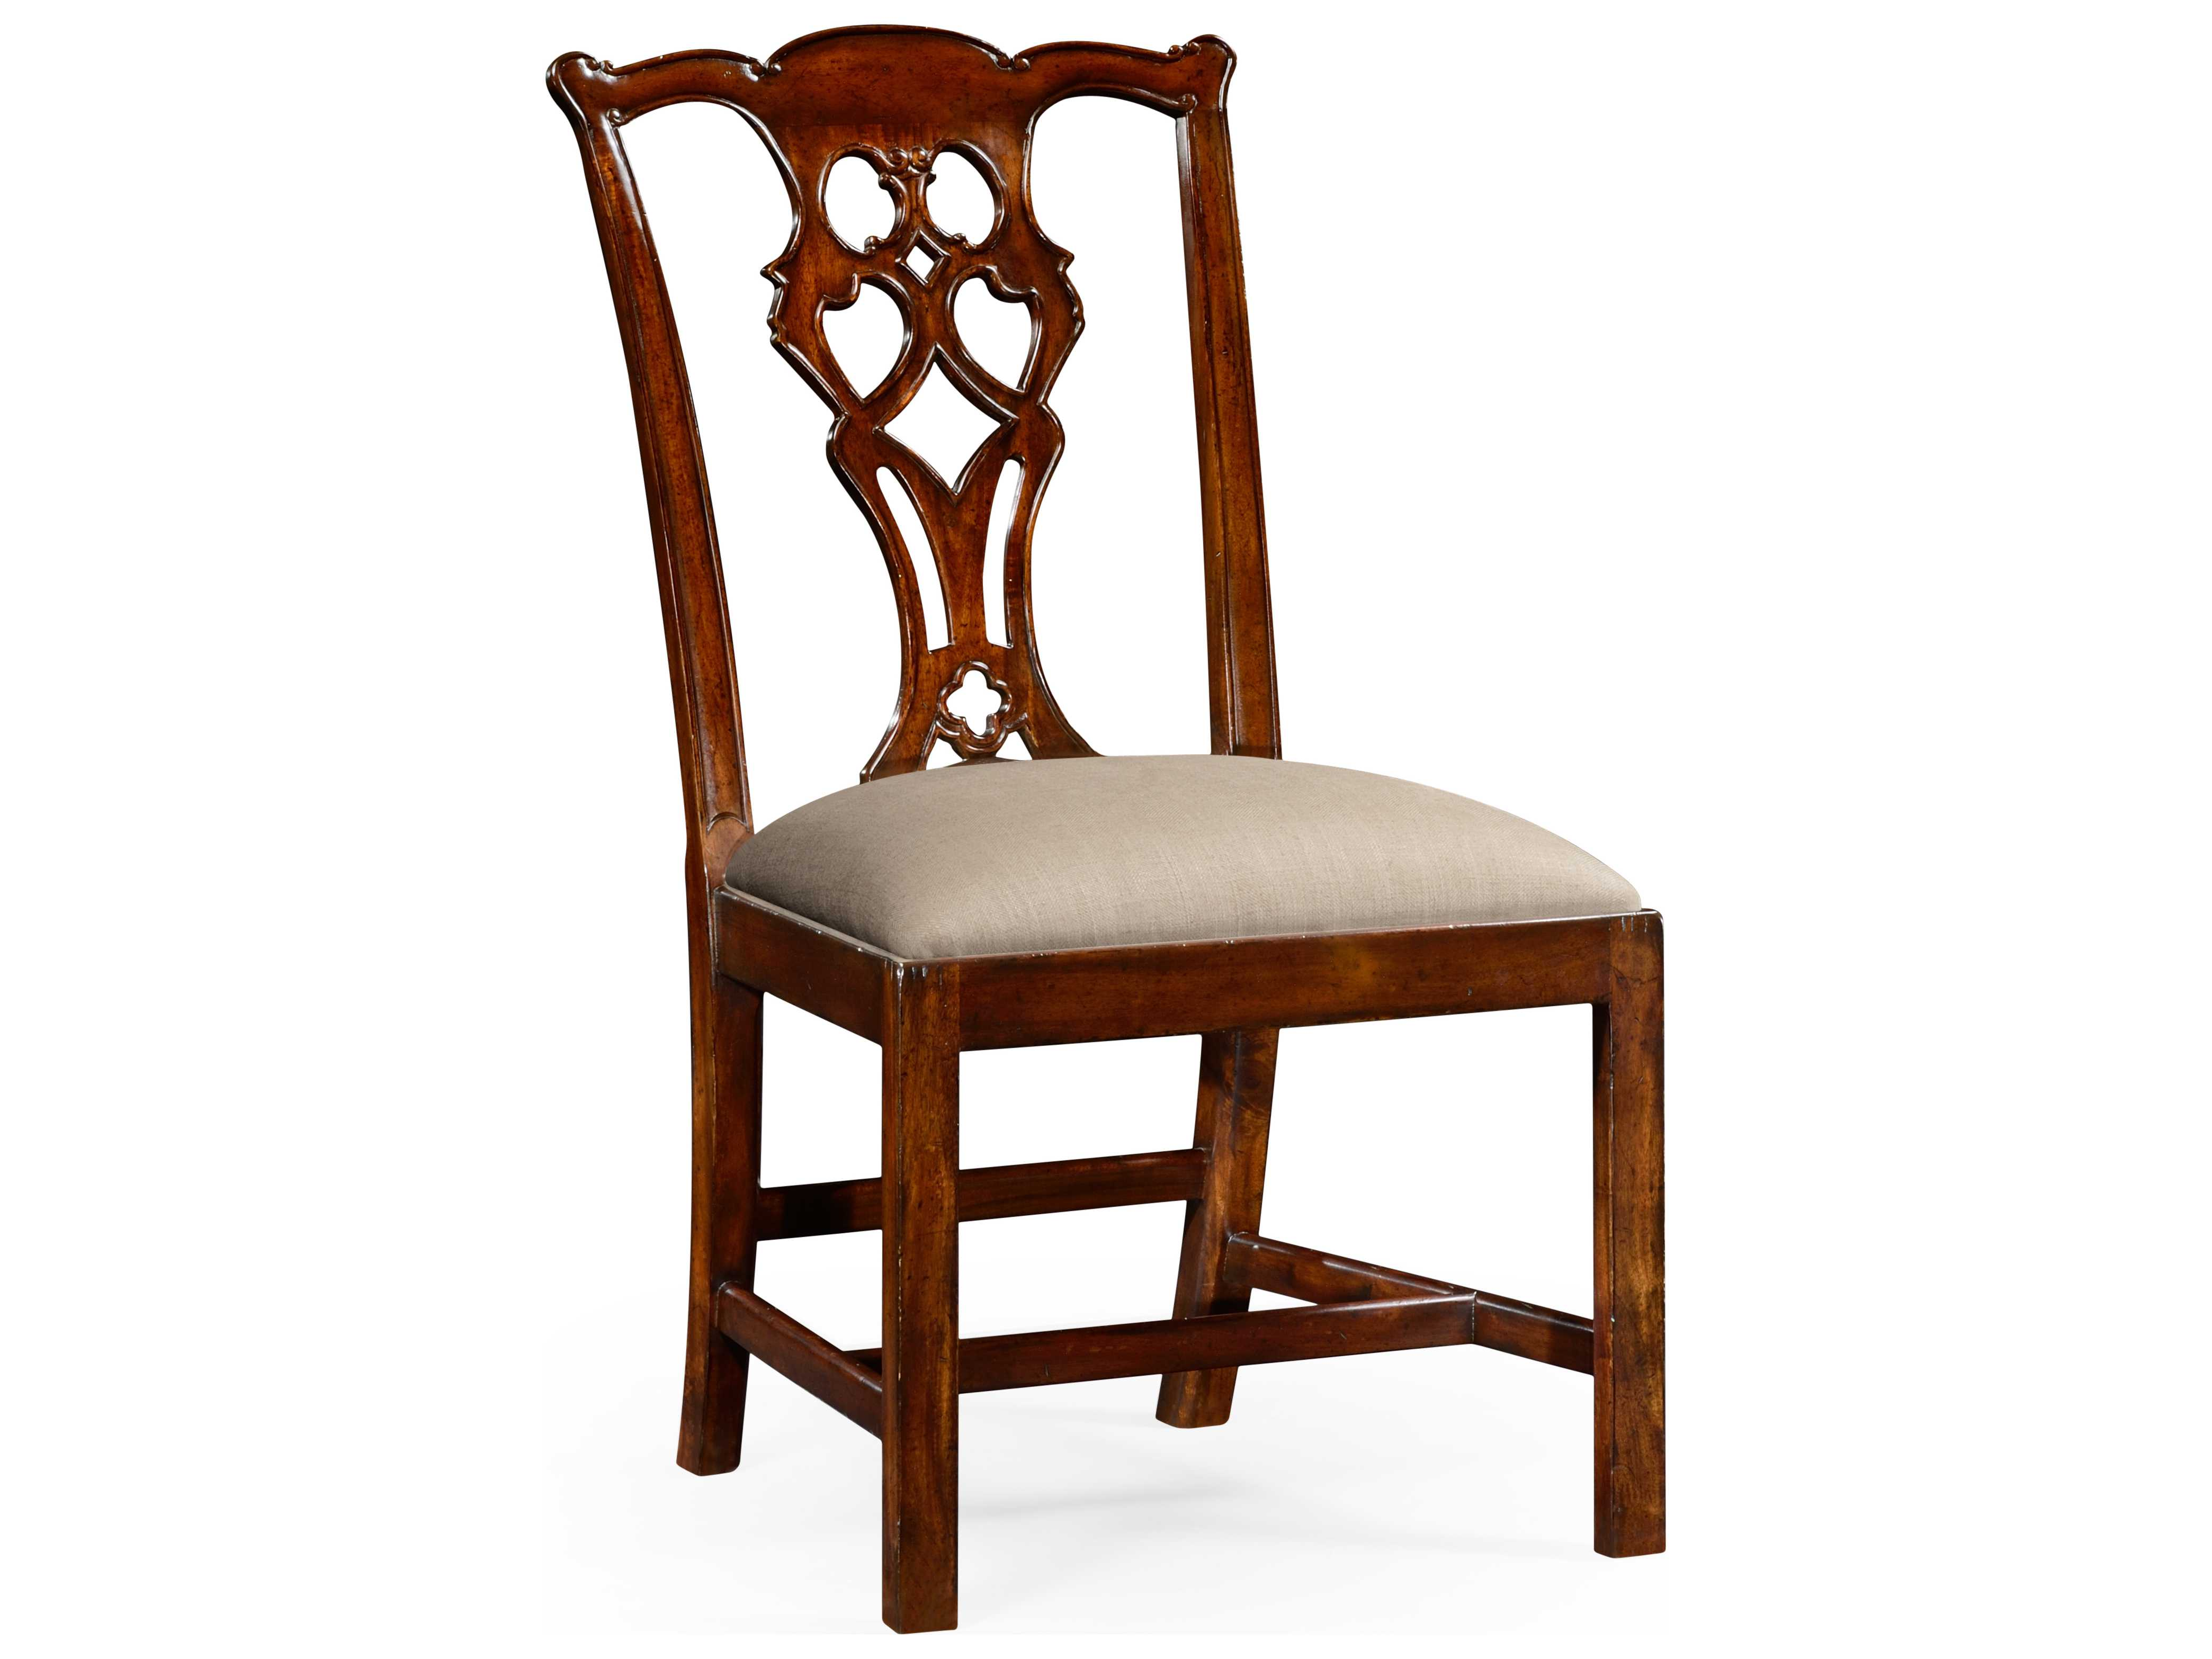 Wonderful image of  Our Antique Furniture Warehouse Mahogany Dining Chair. Cardkeeper.co with #3F1607 color and 4177x3133 pixels